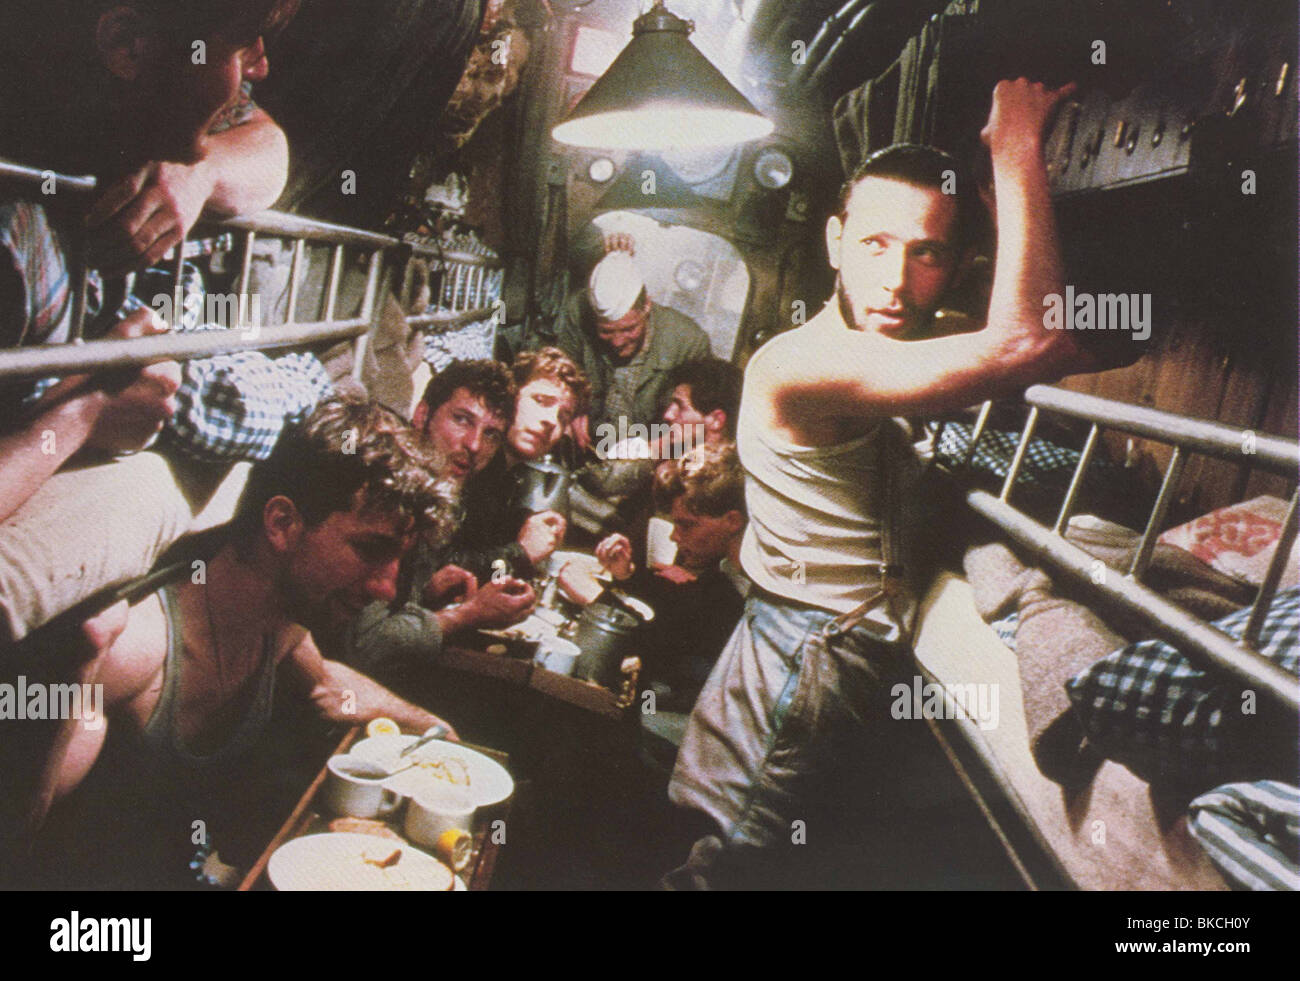 THE BOAT (1981) DAS BOOT (ALT) TBOT 004FOH - Stock Image